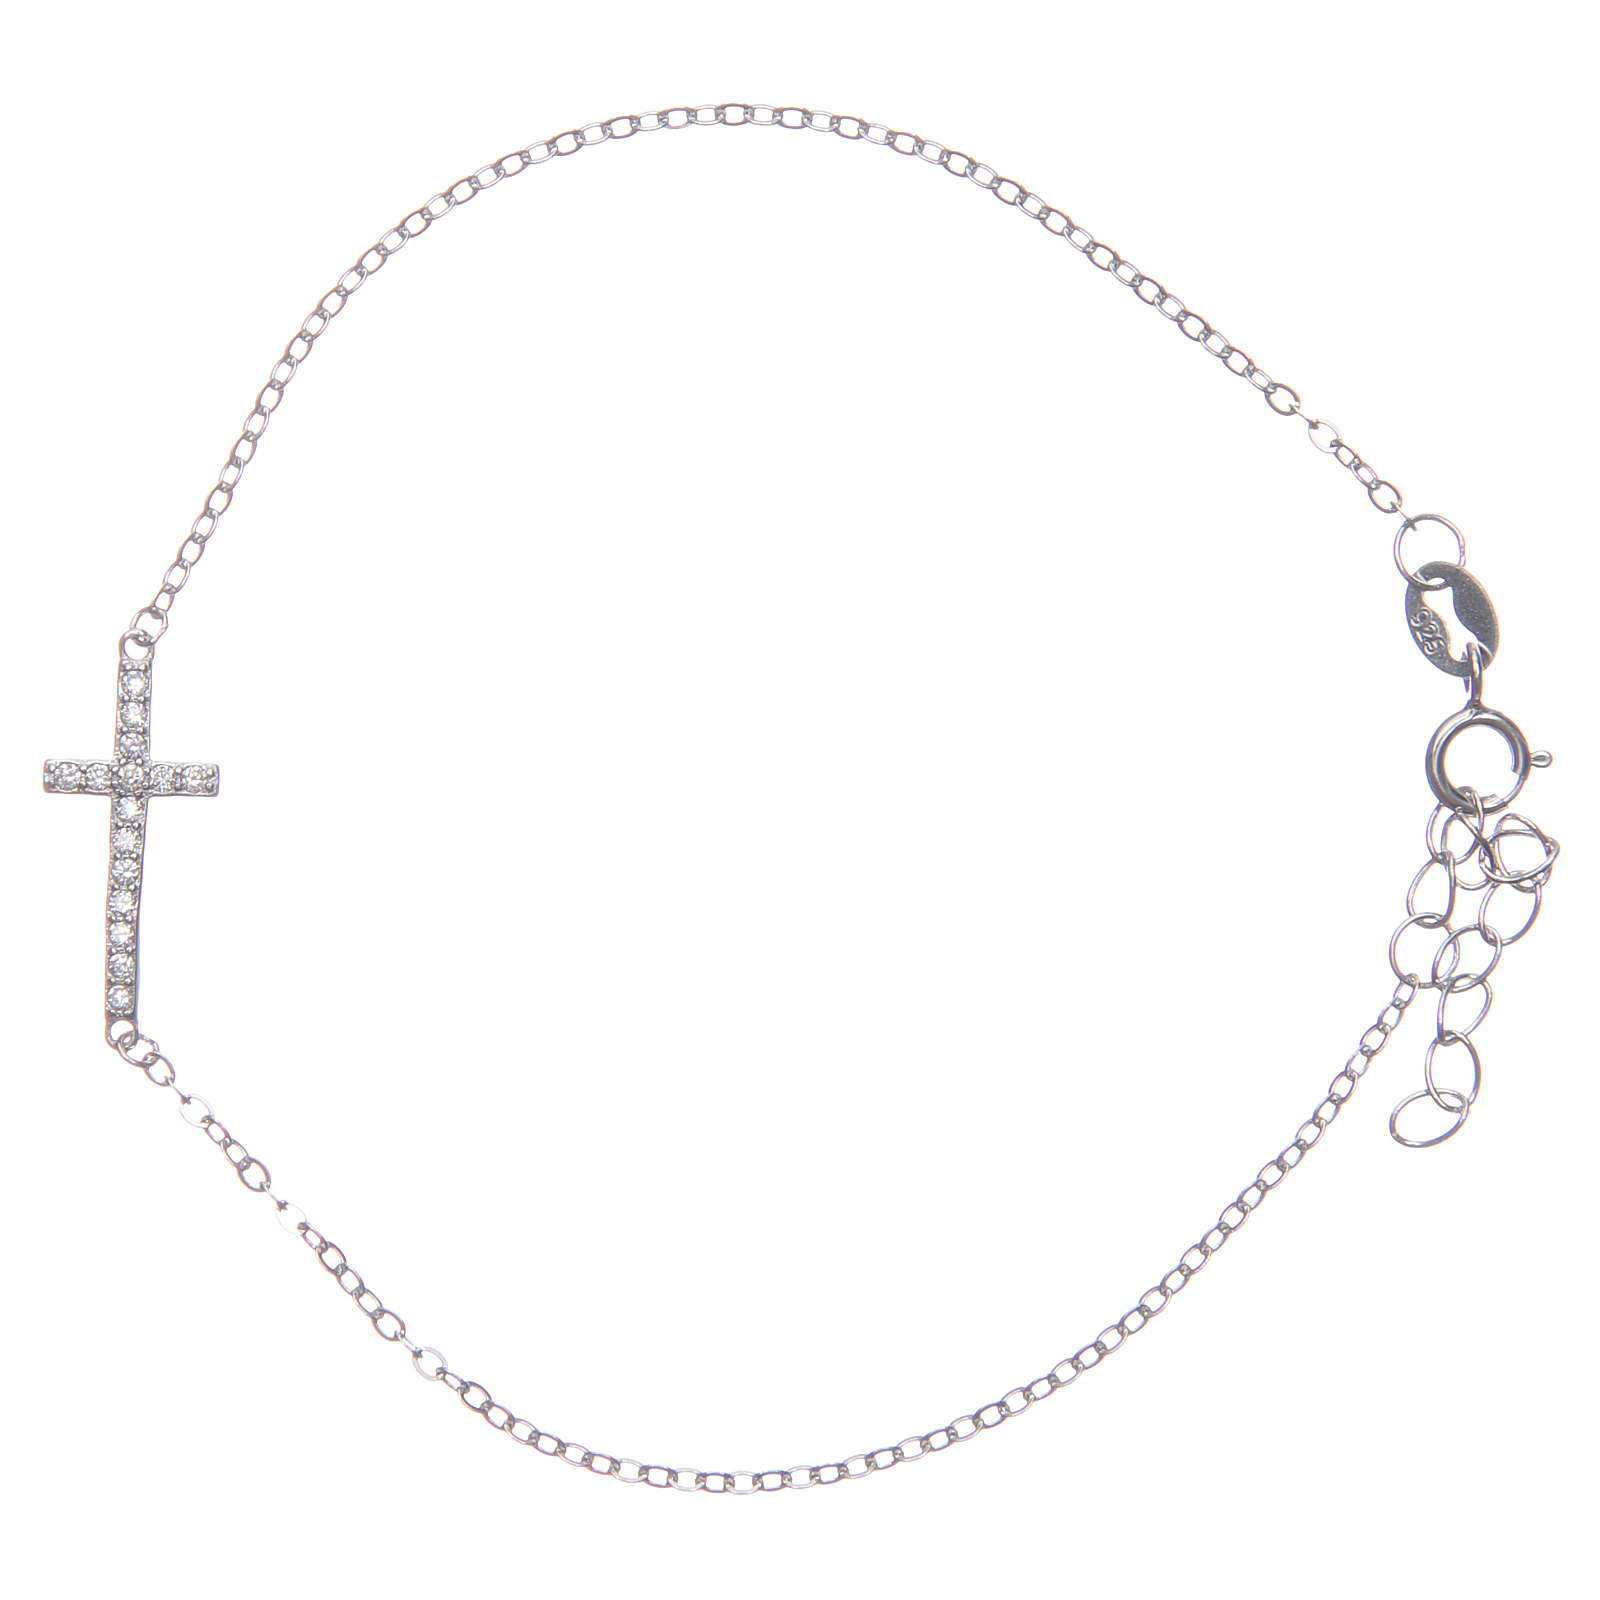 Bracelet with cross in 925 sterling silver finished in rhodium 4